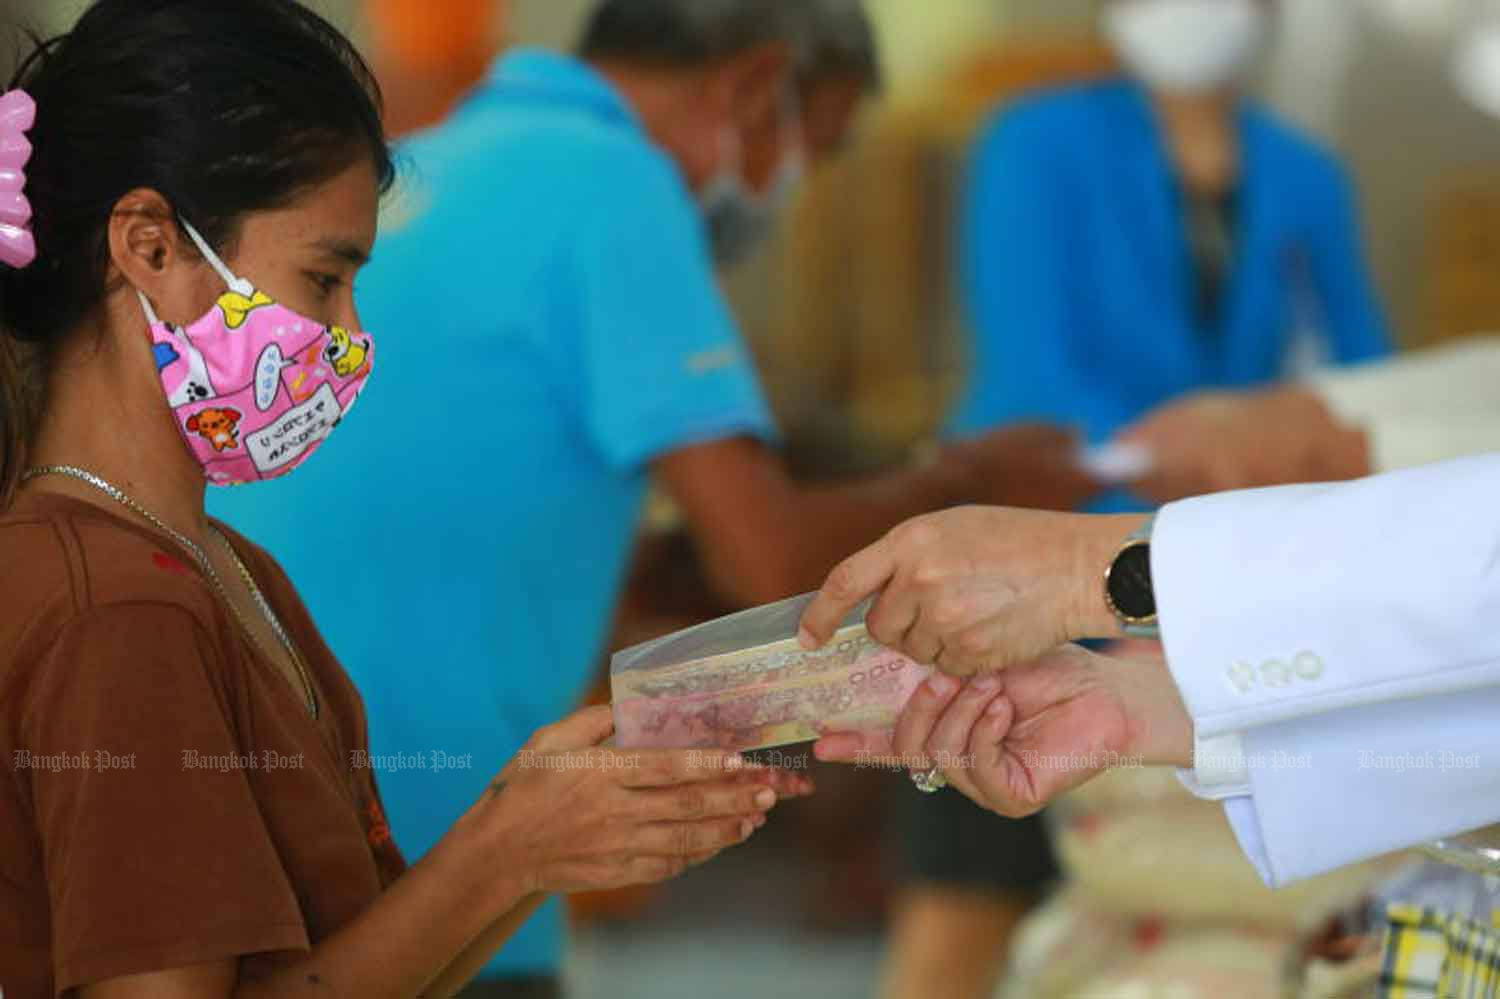 People queue up at Wat Yai Bang Phli Klang in Samut Prakan's Bang Phli district early this month to receive a cash handout of 2,000 baht and 5kg of rice donated by the privately run Chularat 3 Hospital, which is located nearby, to alleviate the economic effects of the Covid-19 pandemic. (Photo: Somchai Poomlard)